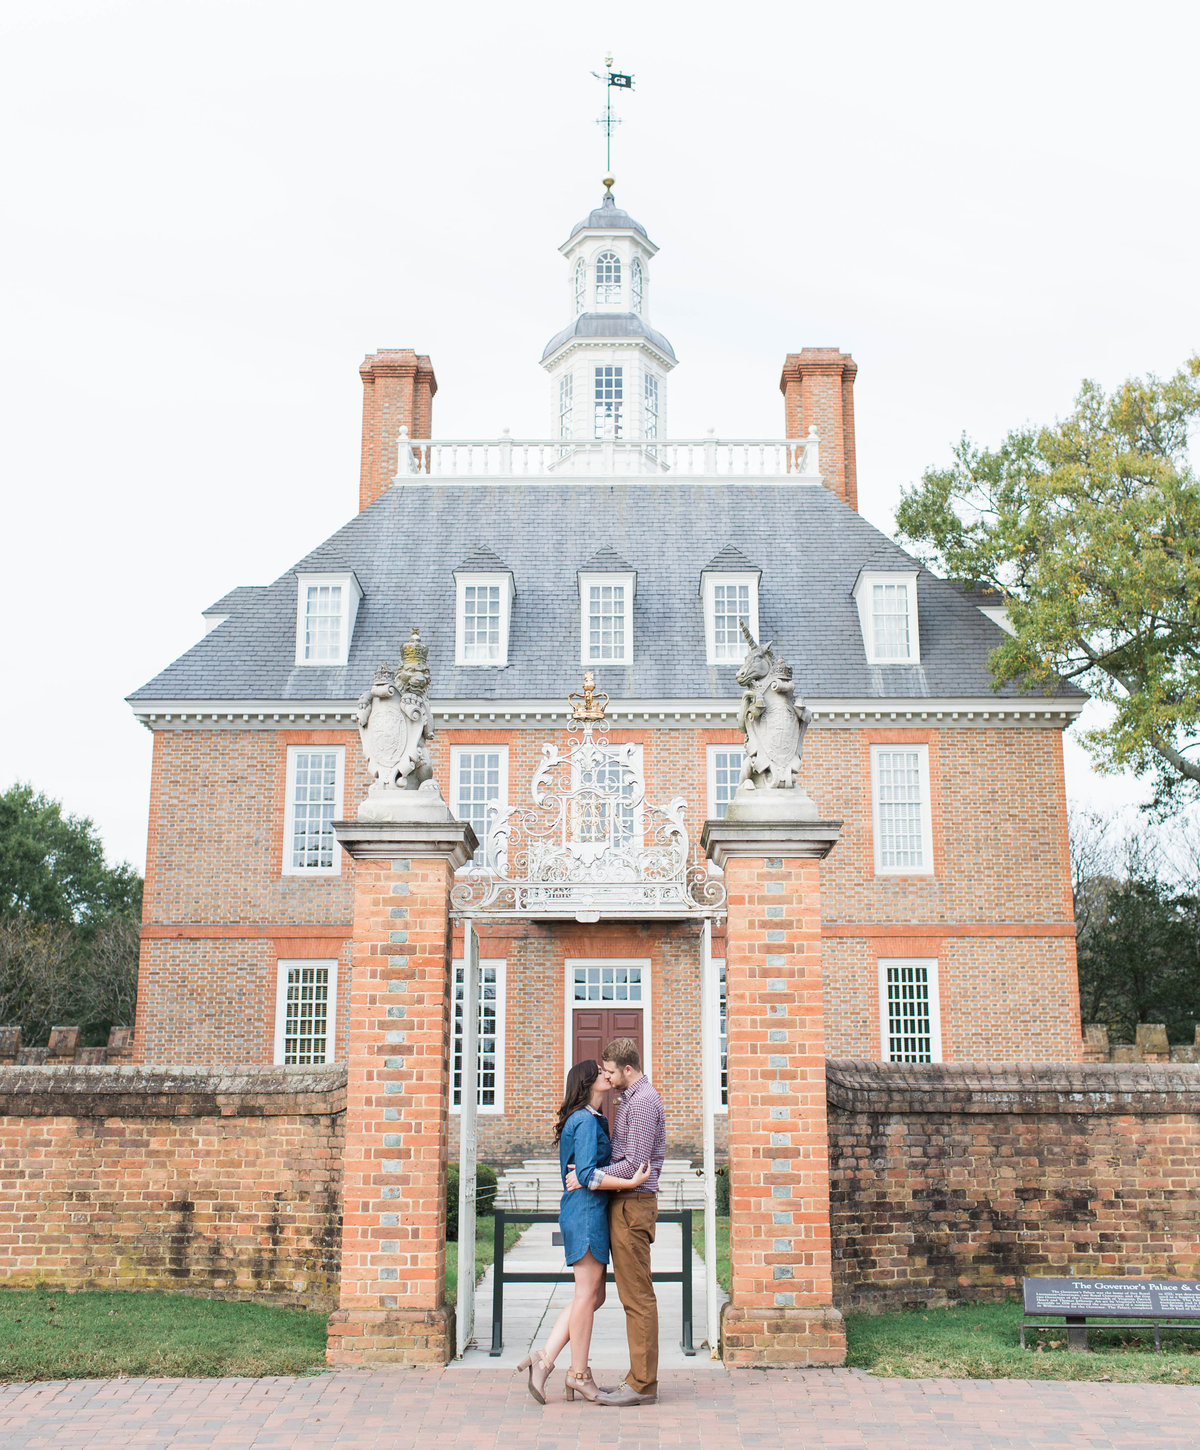 Williamsburg Virginia engagement photographer